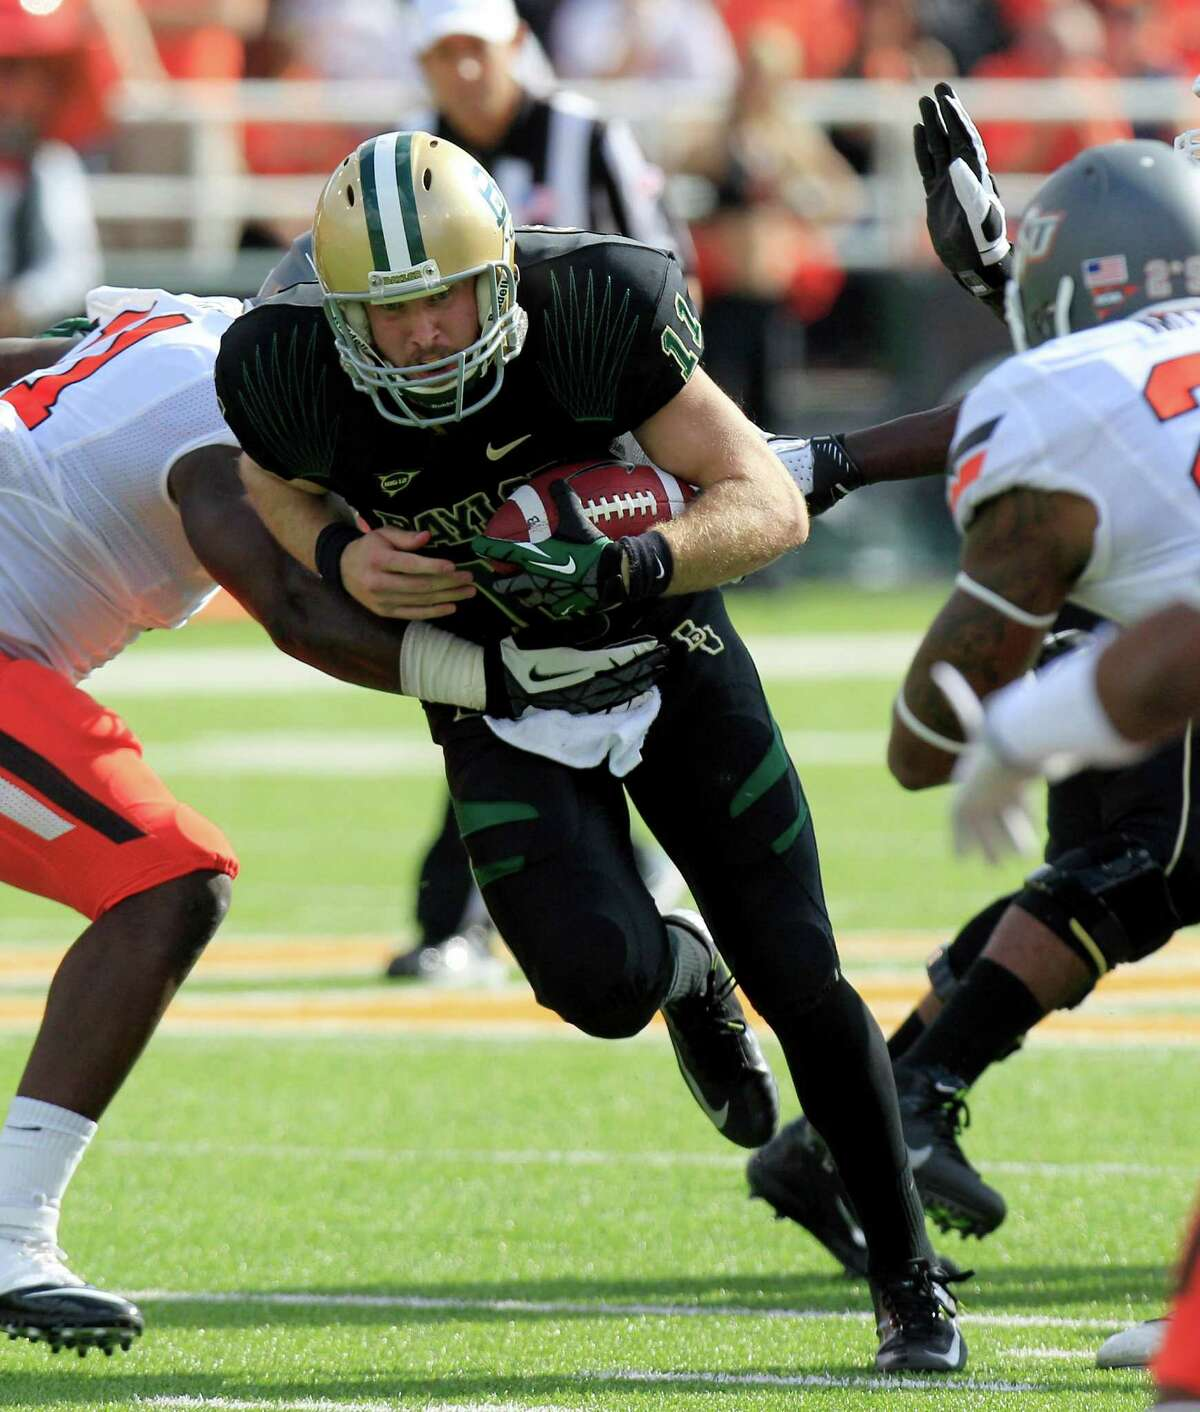 Baylor quarterback Nick Florence (11) runs on the keeper against Oklahoma State linebacker Shaun Lewis (11) during the second half of an NCAA college football game, Saturday, Dec. 1, 2012, in Waco, Texas. Baylor won 41-34. (AP Photo/LM Otero)